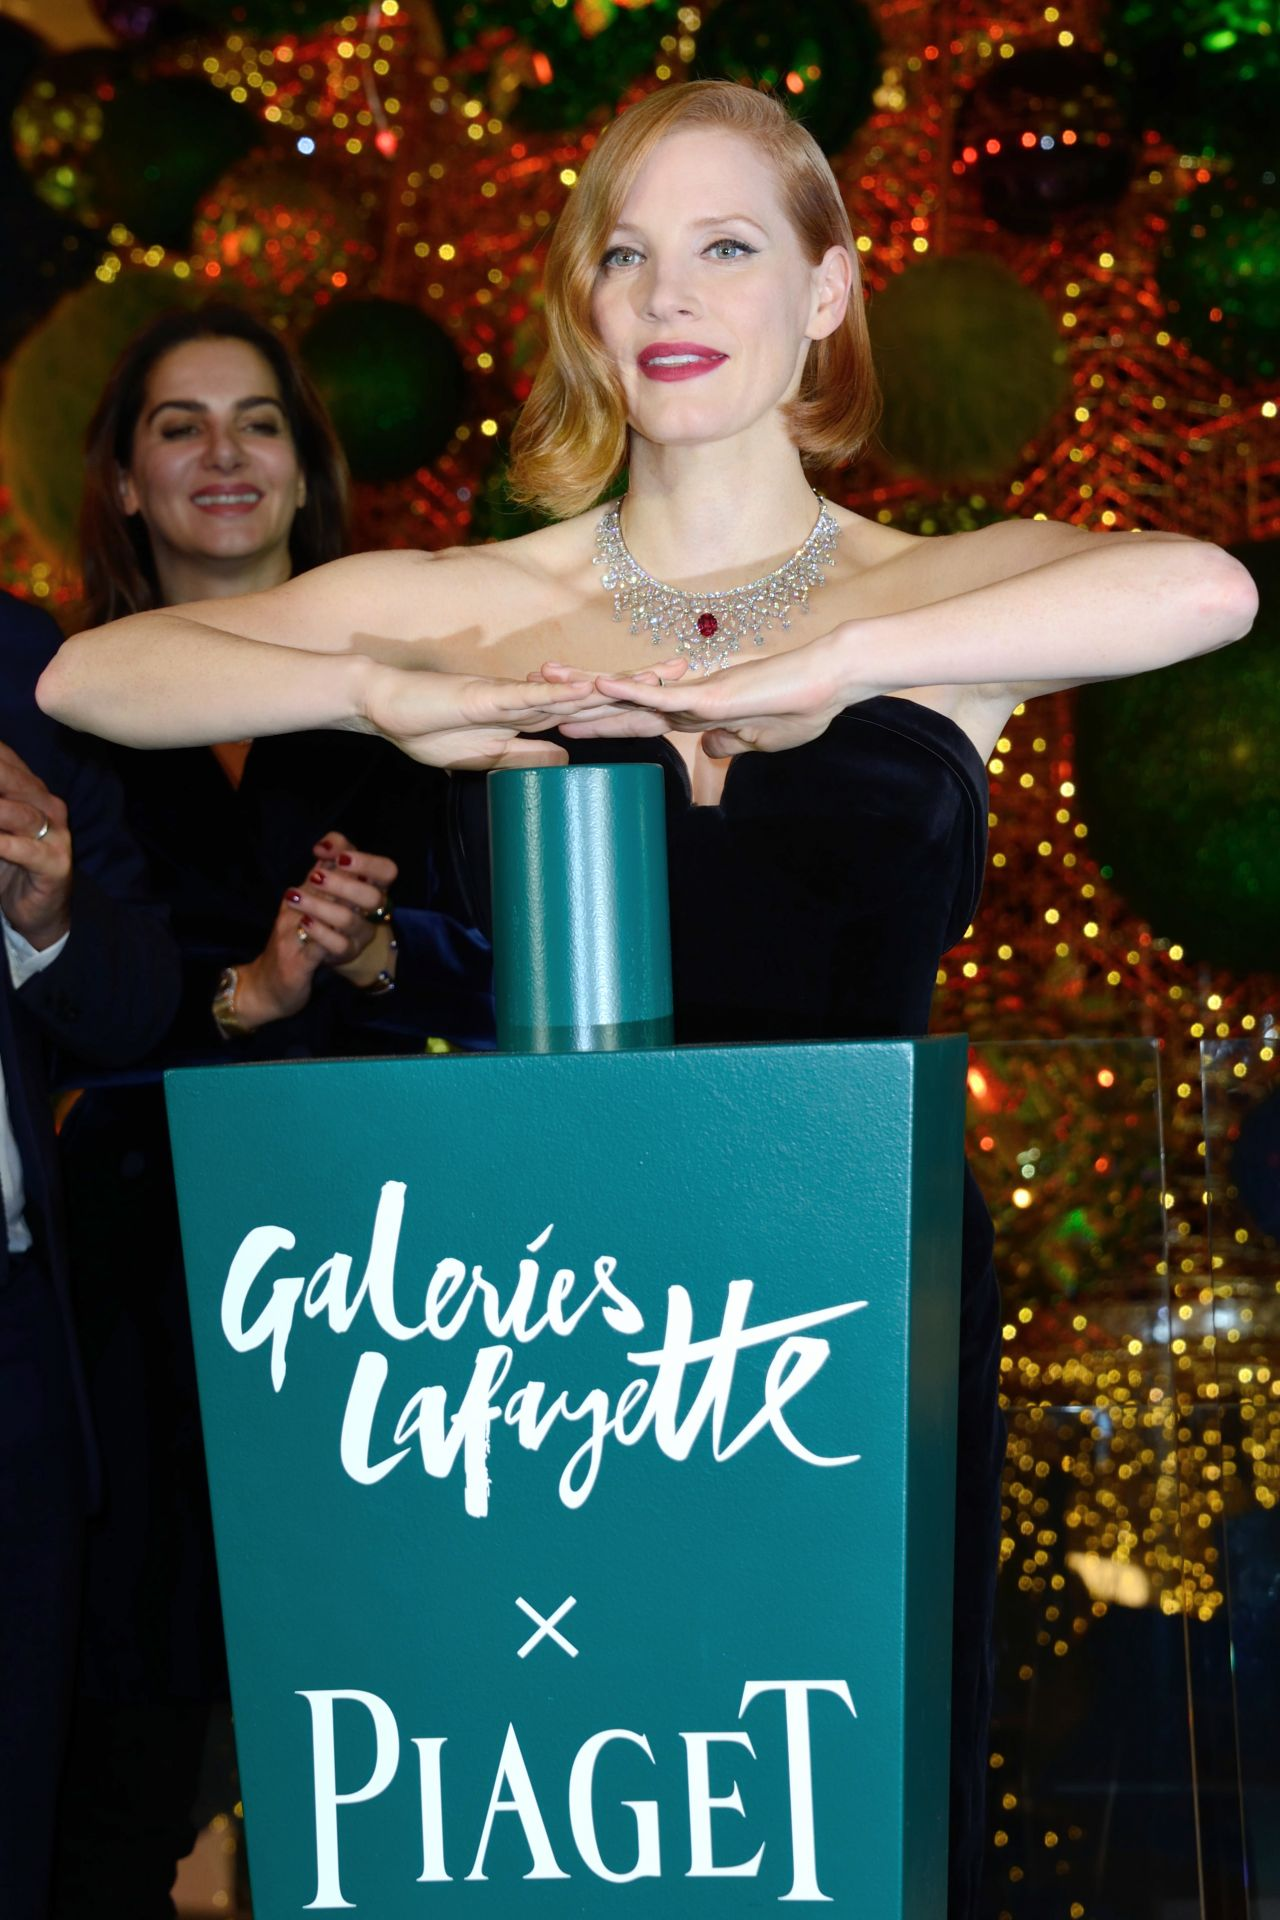 https://celebmafia.com/wp-content/uploads/2018/11/jessica-chastain-at-the-les-galeries-lafayette-christmas-decorations-inauguration-in-paris-11-07-2018-6.jpg